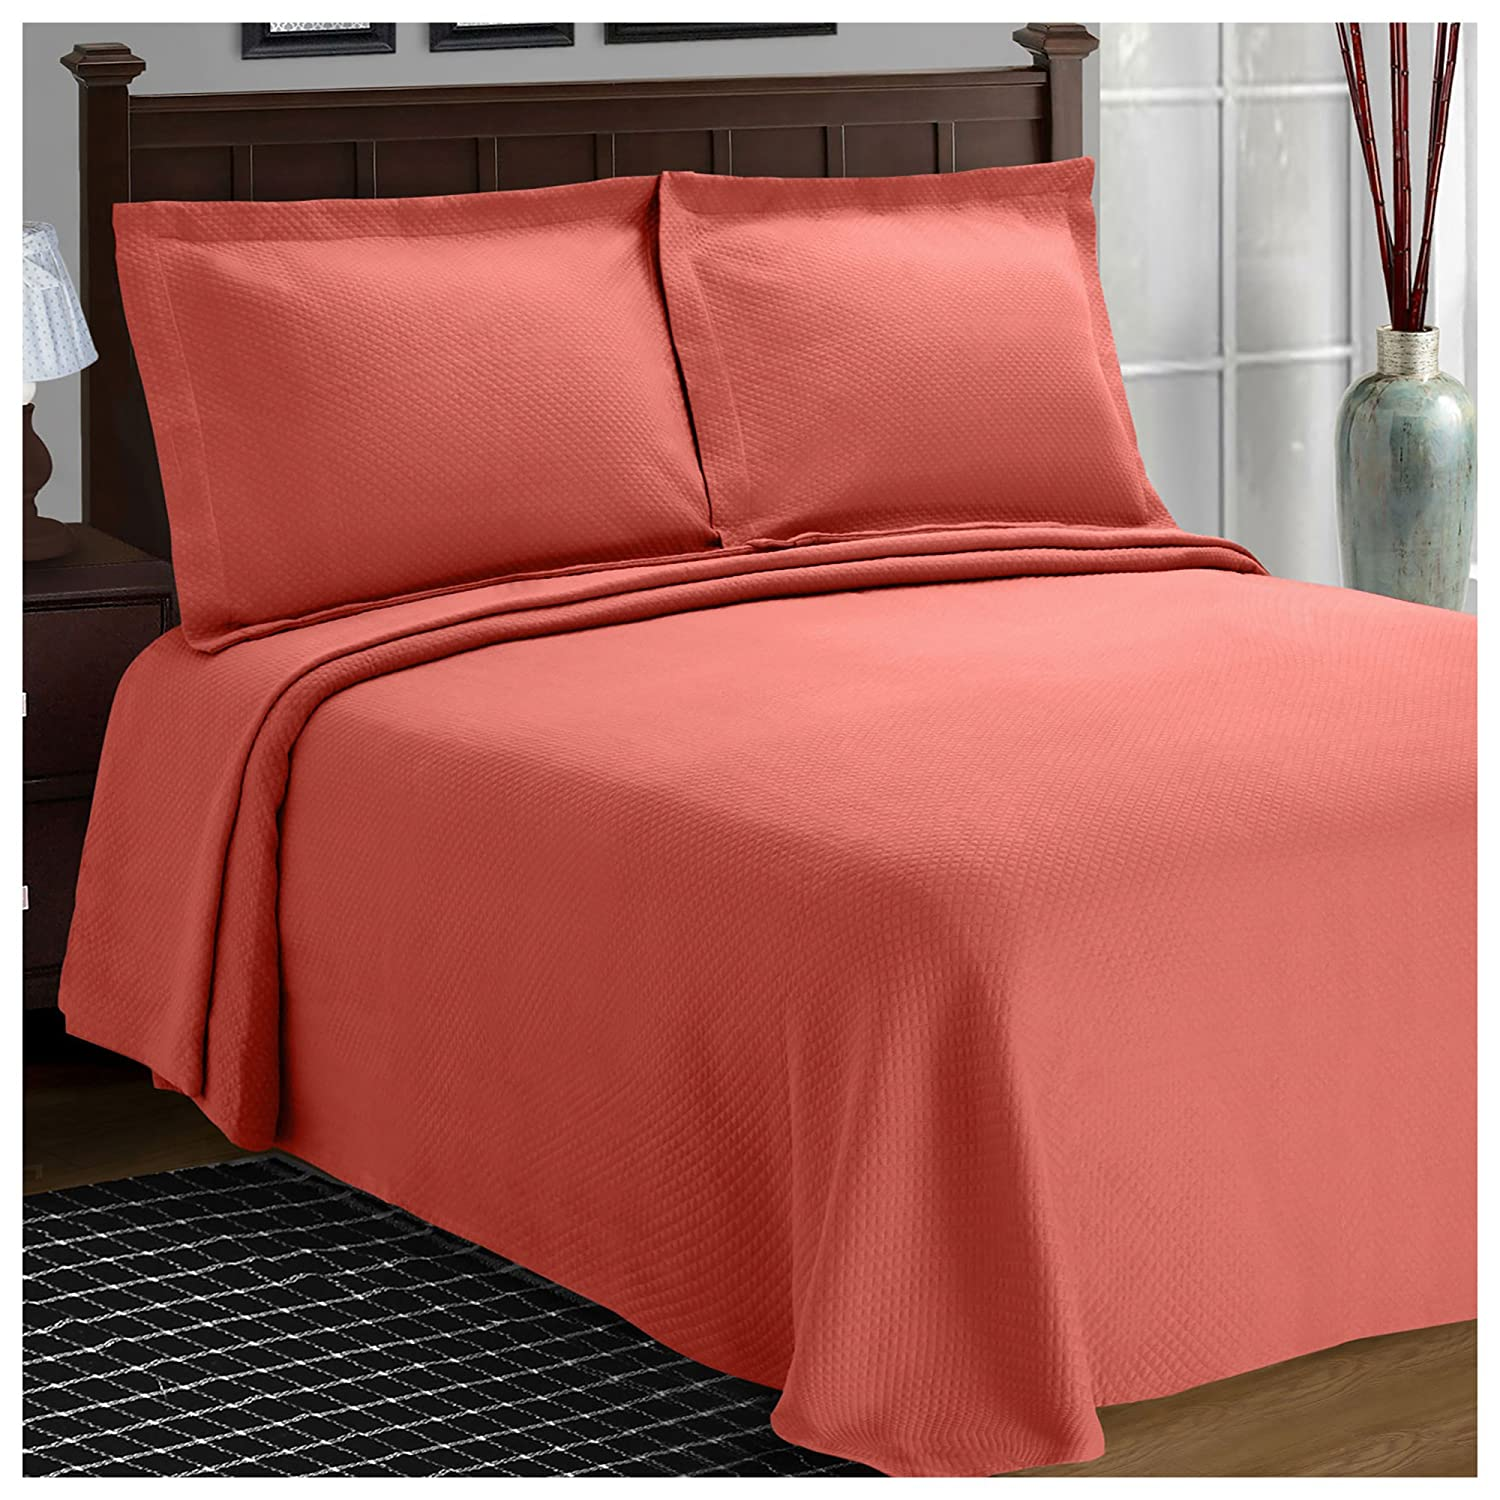 (Queen, Coral) - Superior Diamond Solitaire Jacquard Matelasse 100% Premium Cotton Bedspread with Matching Shams, Queen, Coral B01MYQ7IPQ コーラル クイーン